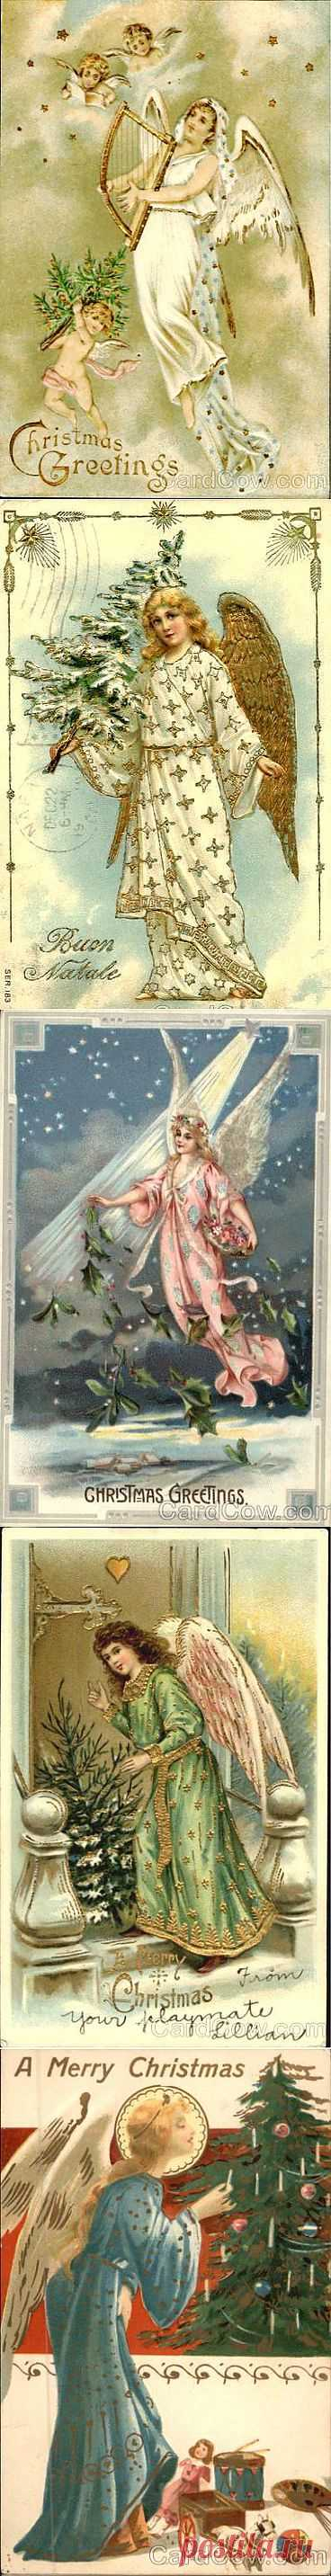 Christmas angels from old cards-4.